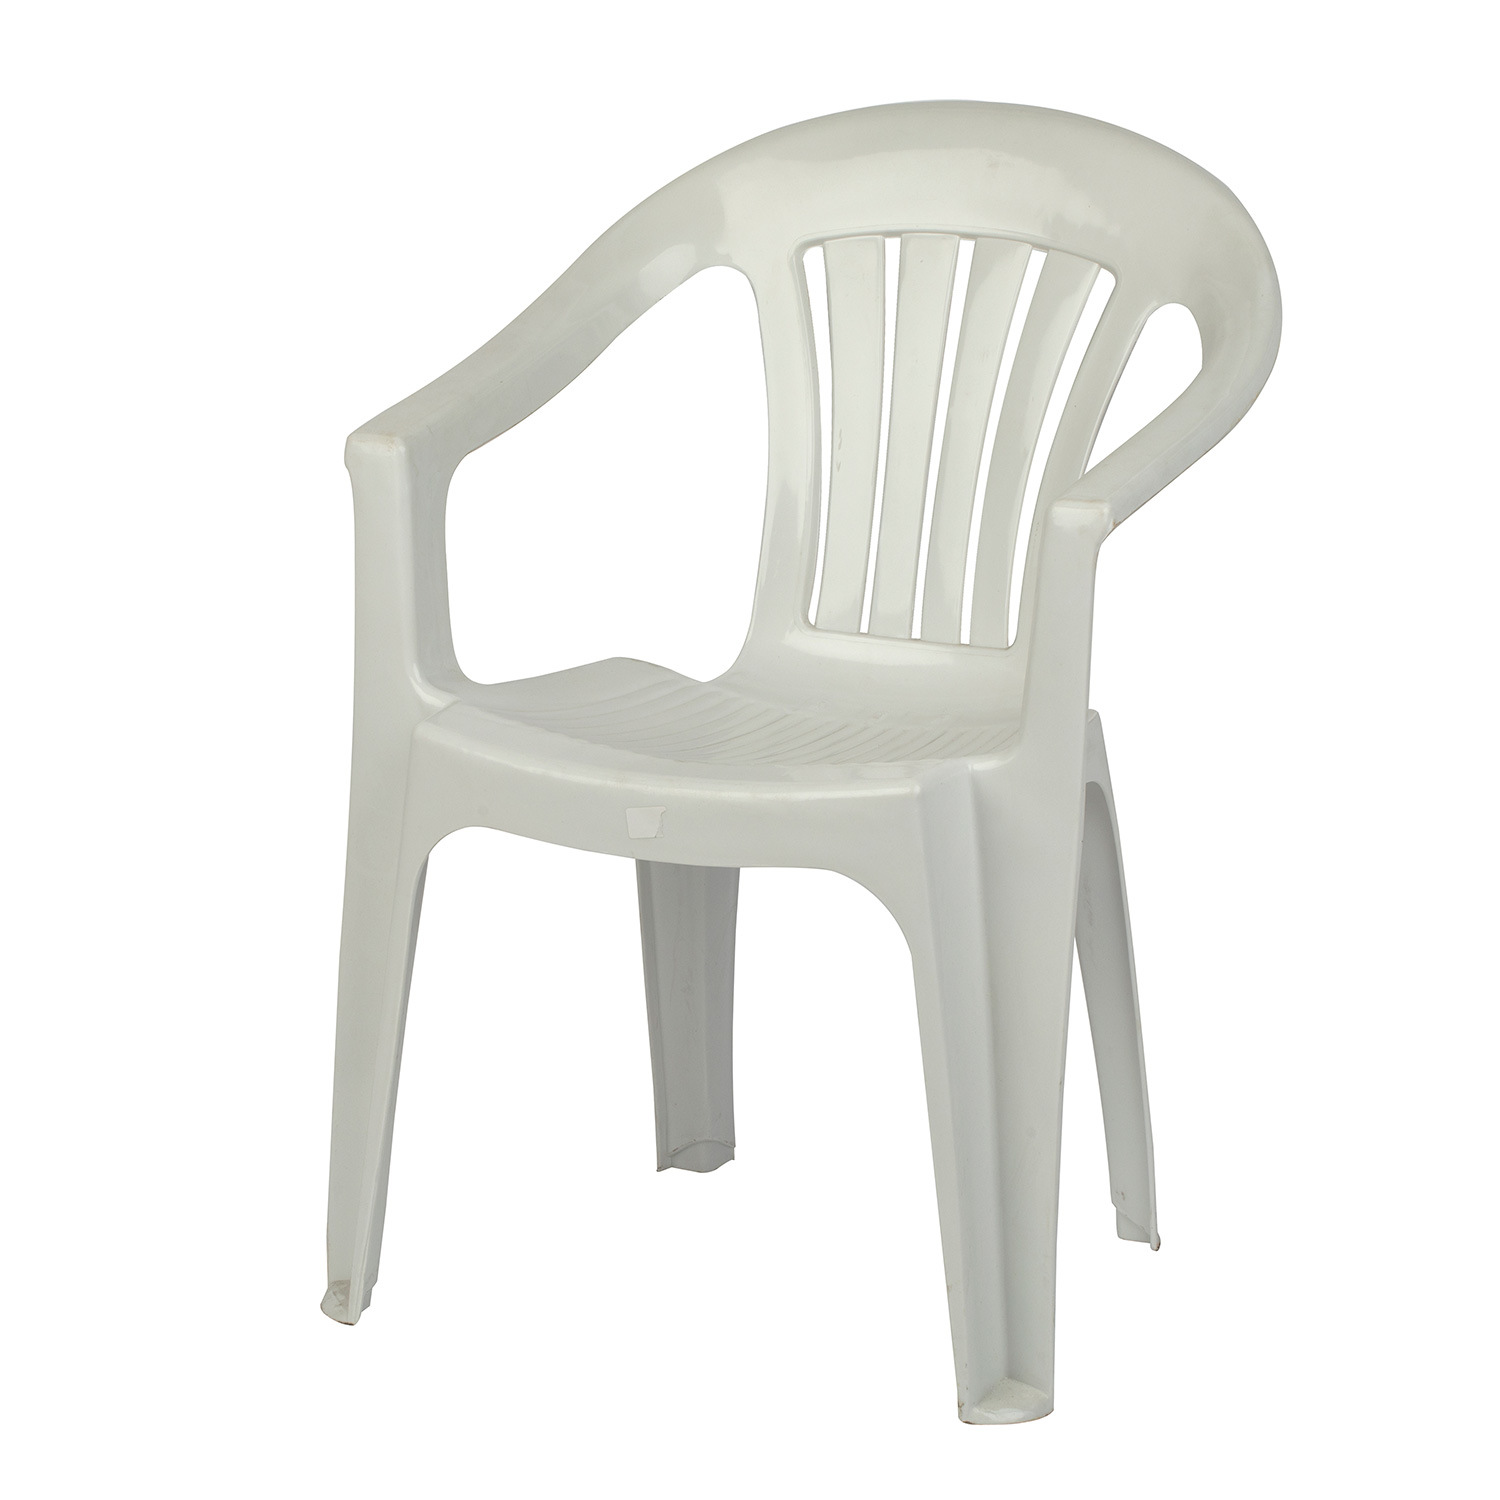 Outdoor Plastic Chair Lawn Chairs With Arms China Chair Plastic Chair Made In China Com